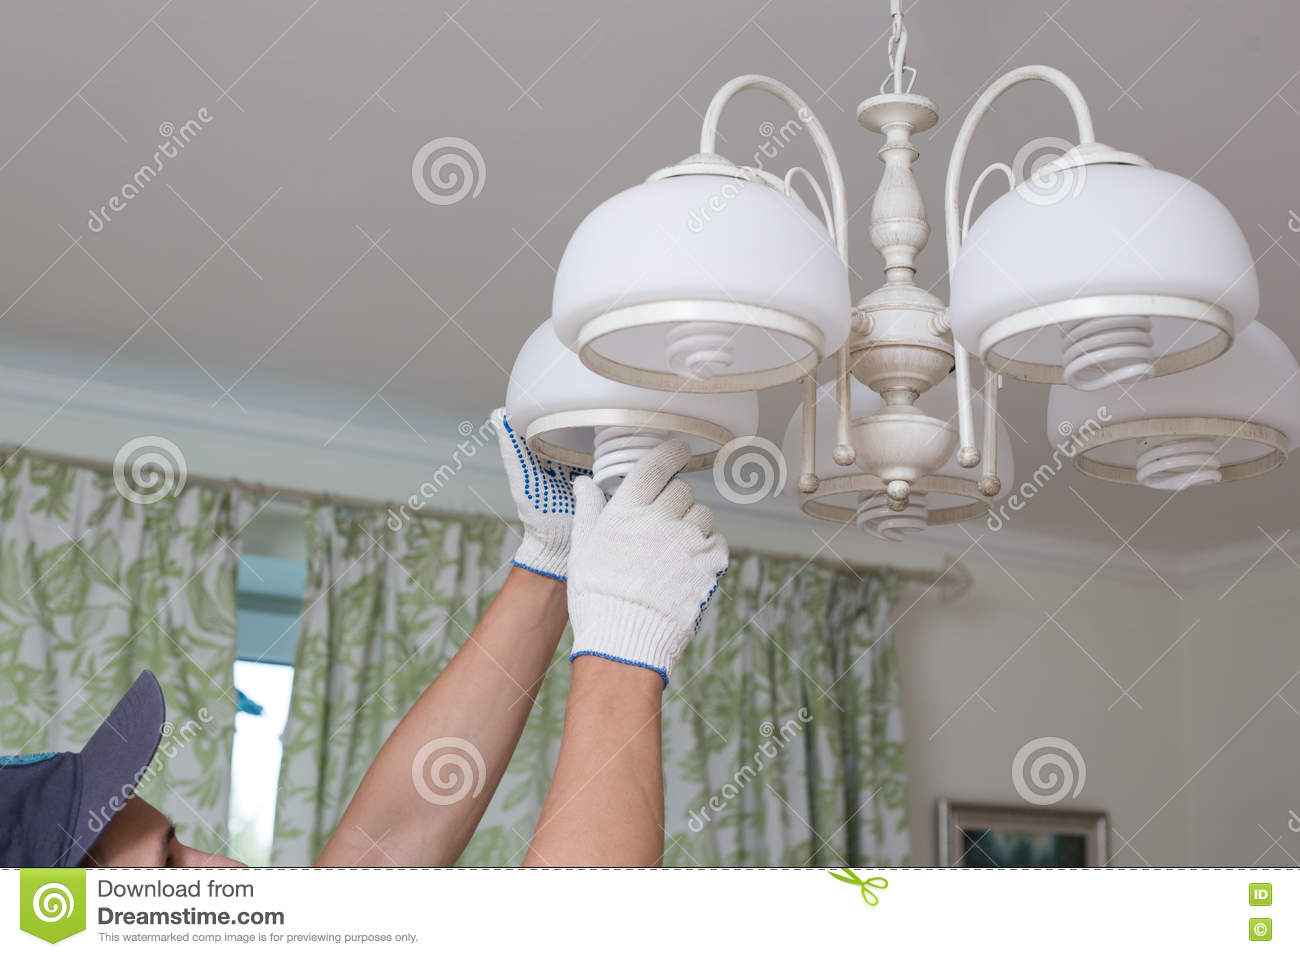 Man changes an electric light bulb, energy efficiency